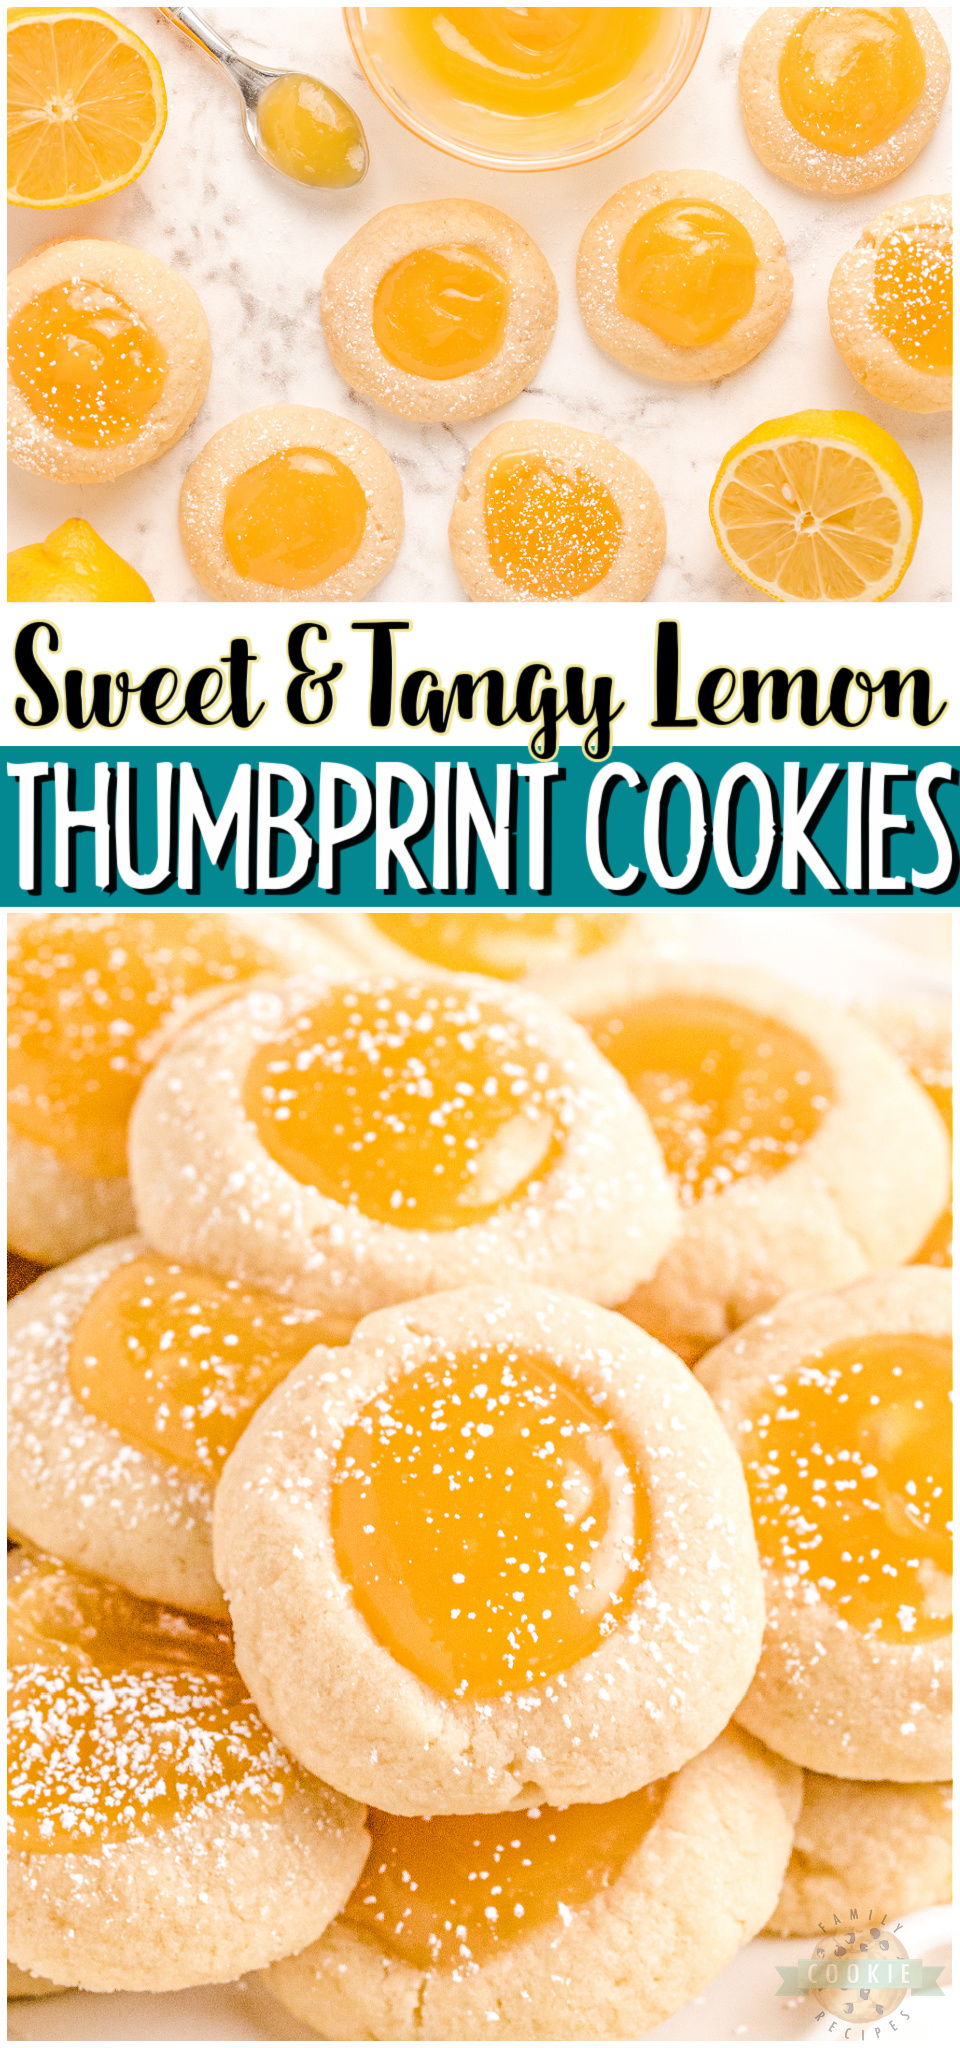 Lemon thumbprint cookies made with buttery soft cookies & filled with creamy lemon curd! Perfectly sweet & tart thumbprint cookies with bright lemon flavor.